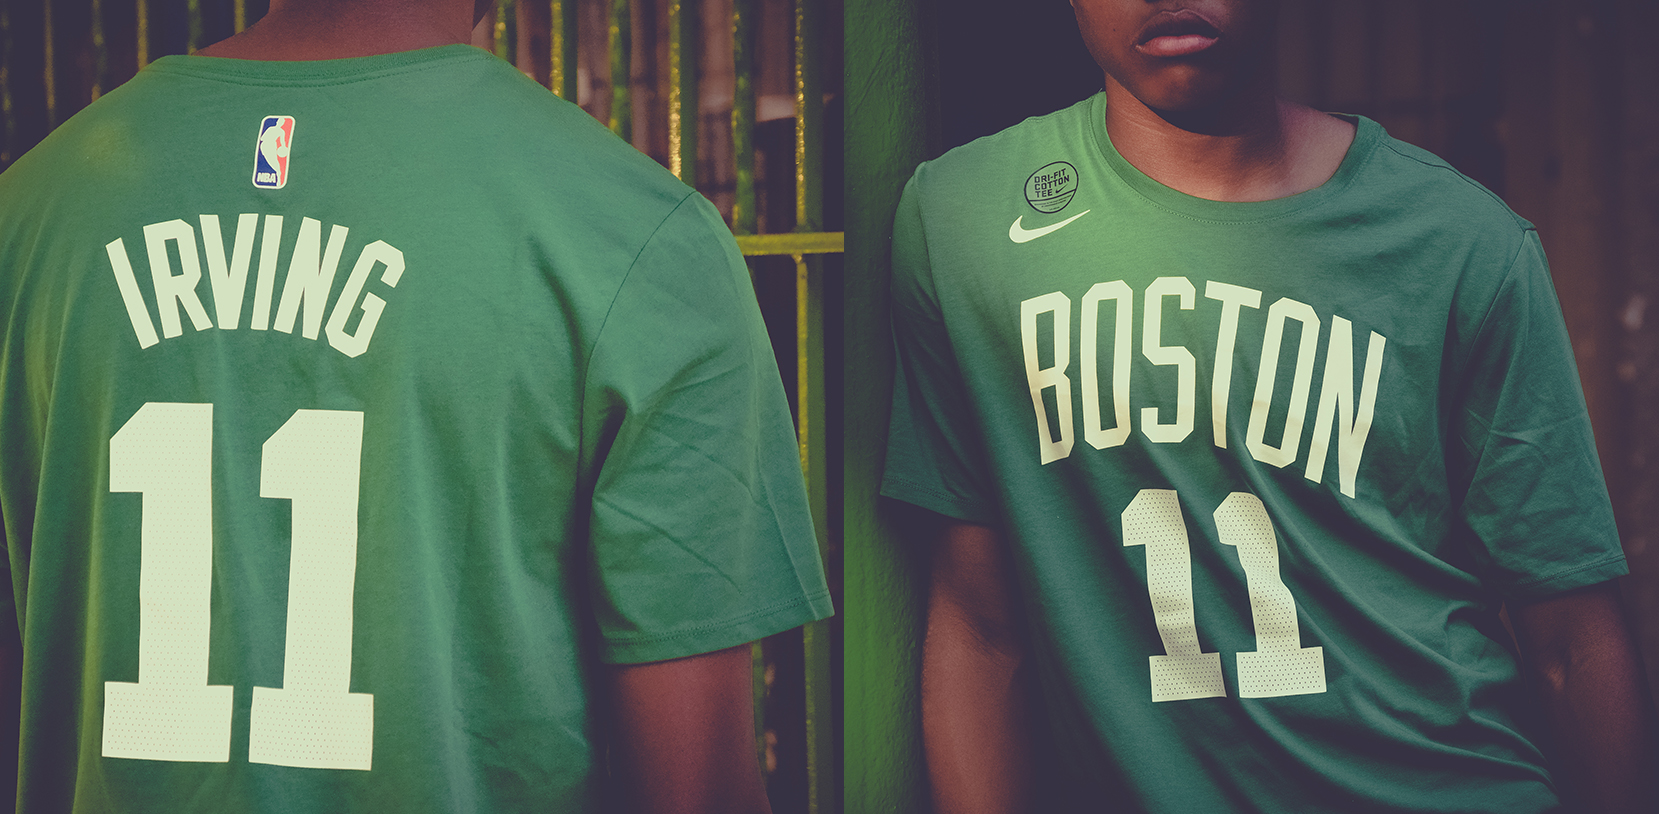 ca66318b5 Enhance your Nike's NBA collection by grabbing this Kyrie Irving Name and  Number T-shirt from Shesha Stores (The Zone, Melrose Arch, Canal Walk,  Eastgate, ...